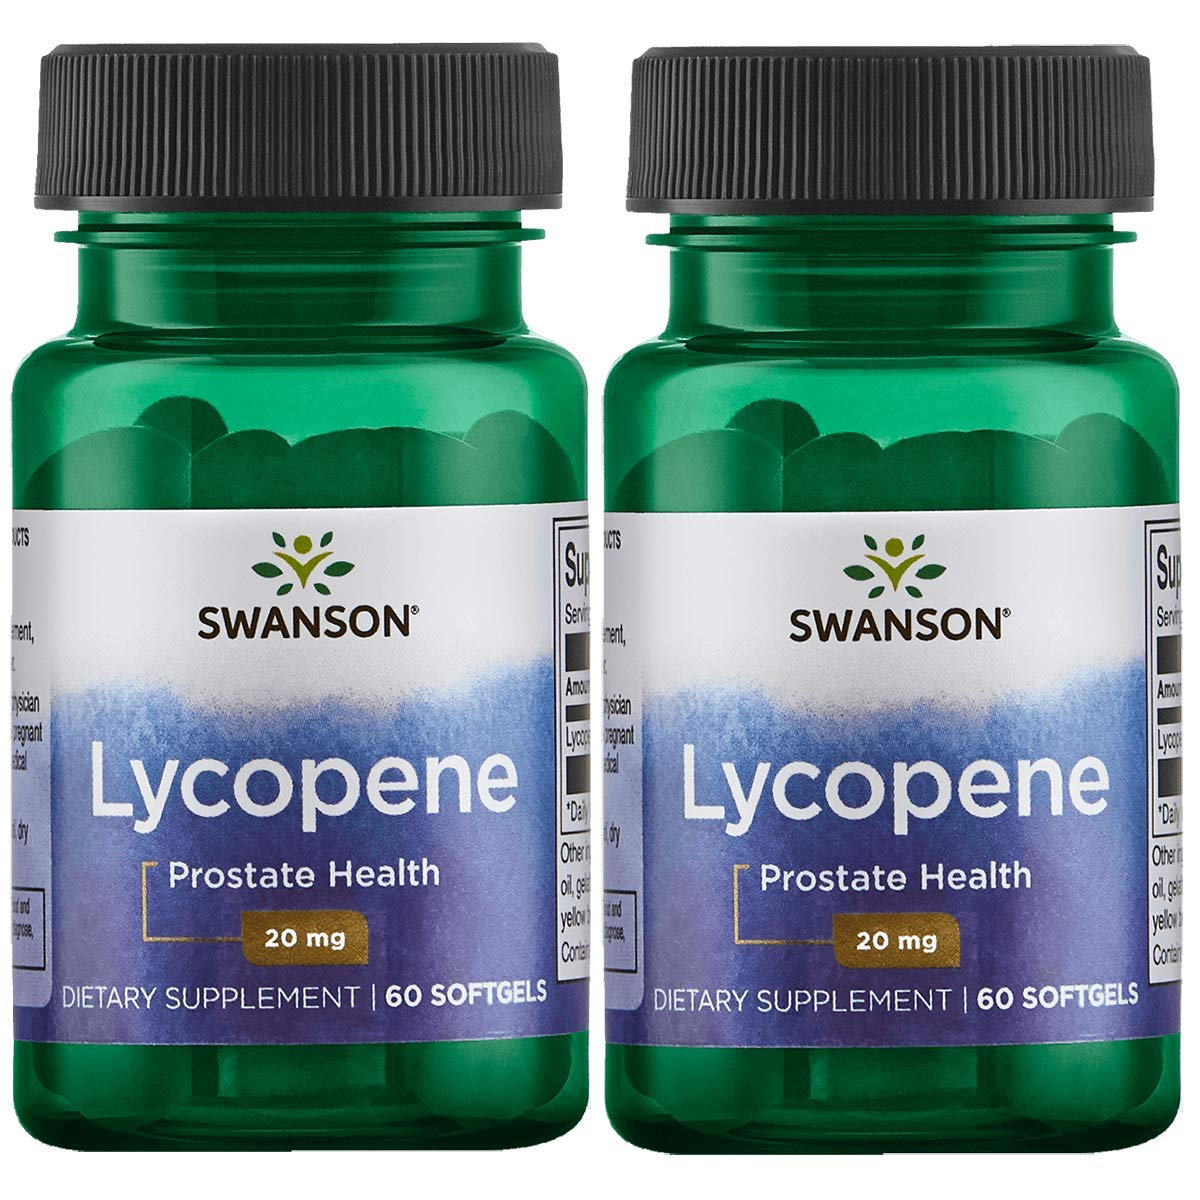 Swanson Lycopene Supplement, Prostate Health Supplement 20 mg, 60 Softgels (2 Pack) by Swanson